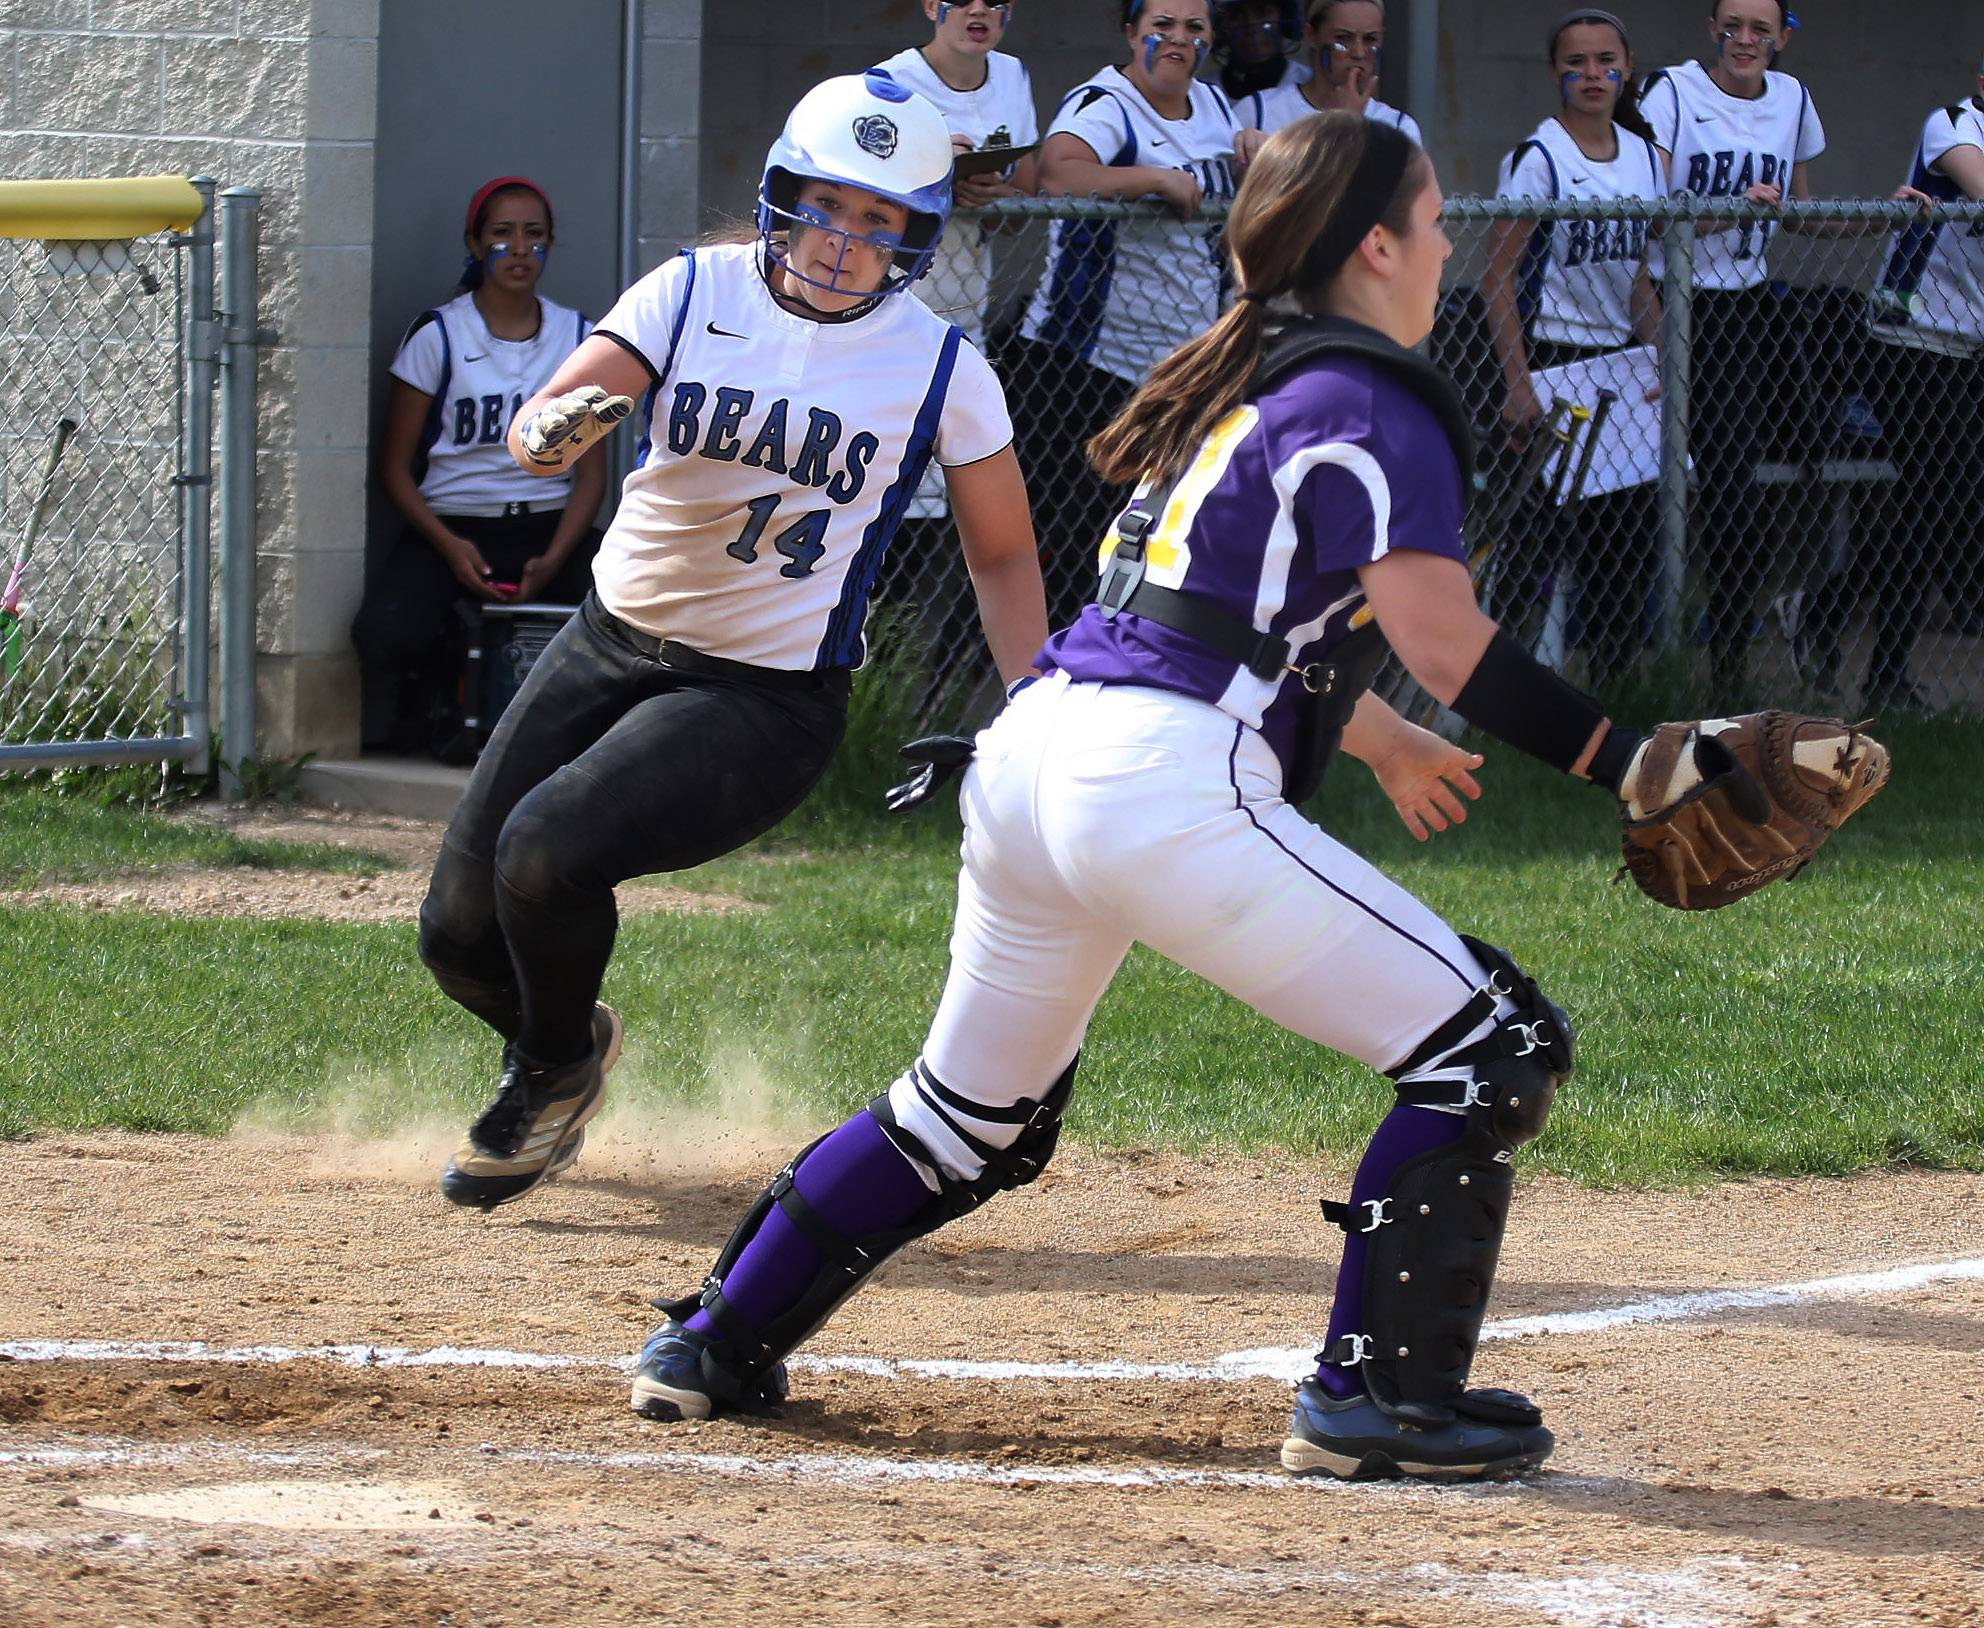 Lake Zurich's Maria Schroeder scores past Wauconda catcher Taylor McCarthy in the first inning of Thursday's NSC championship game at Wauconda.